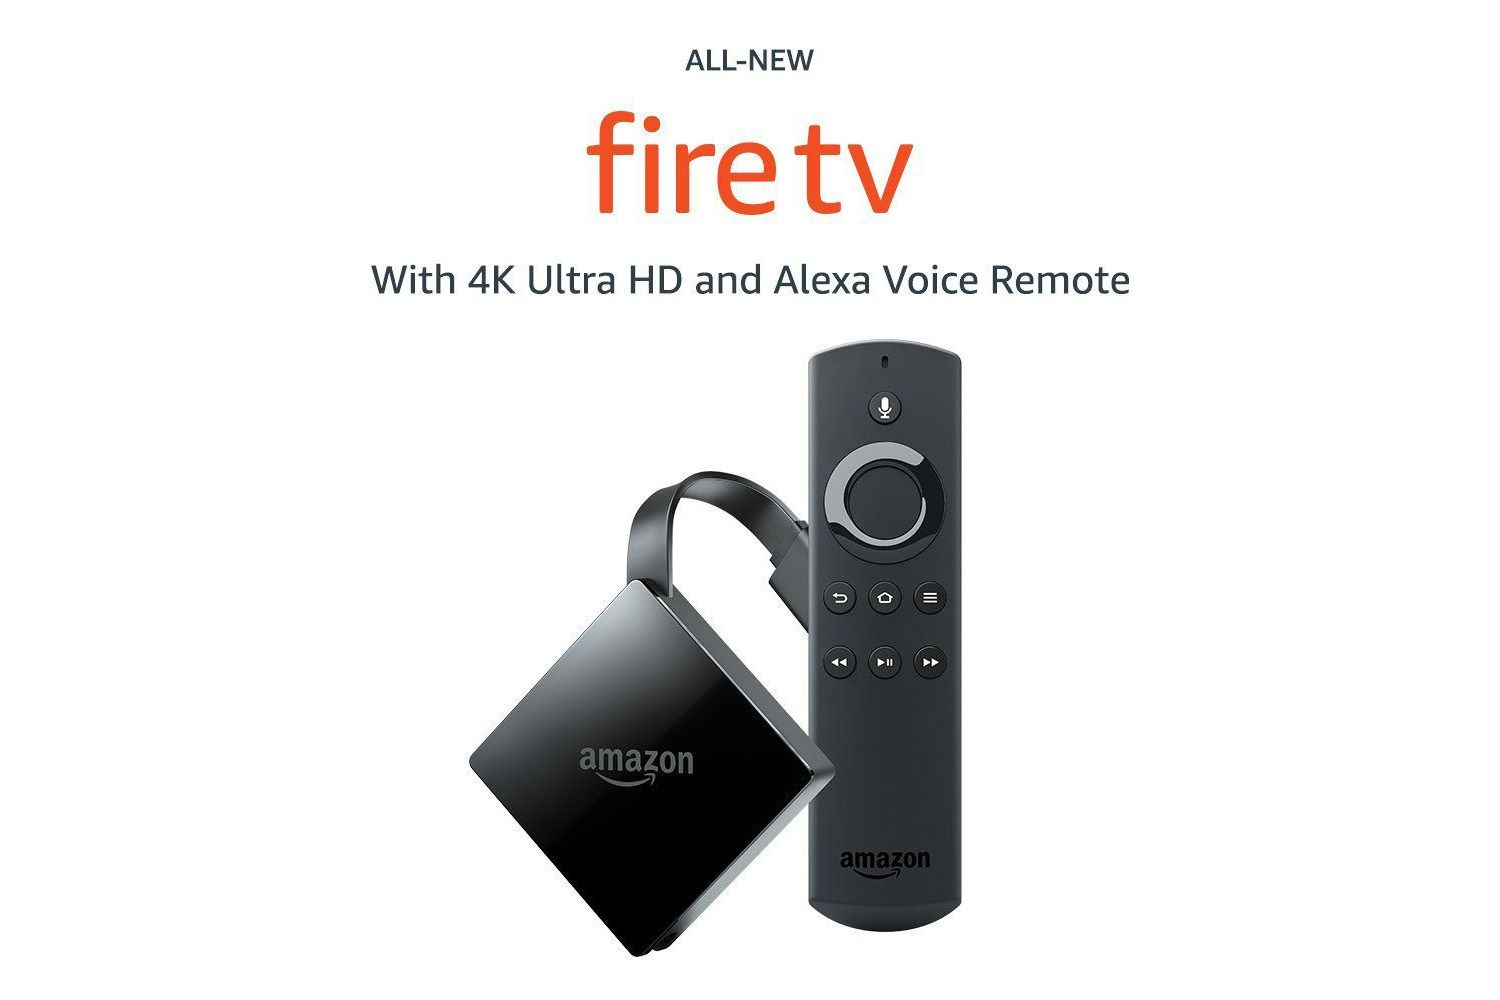 How to Set Up and Use Amazon Fire TV